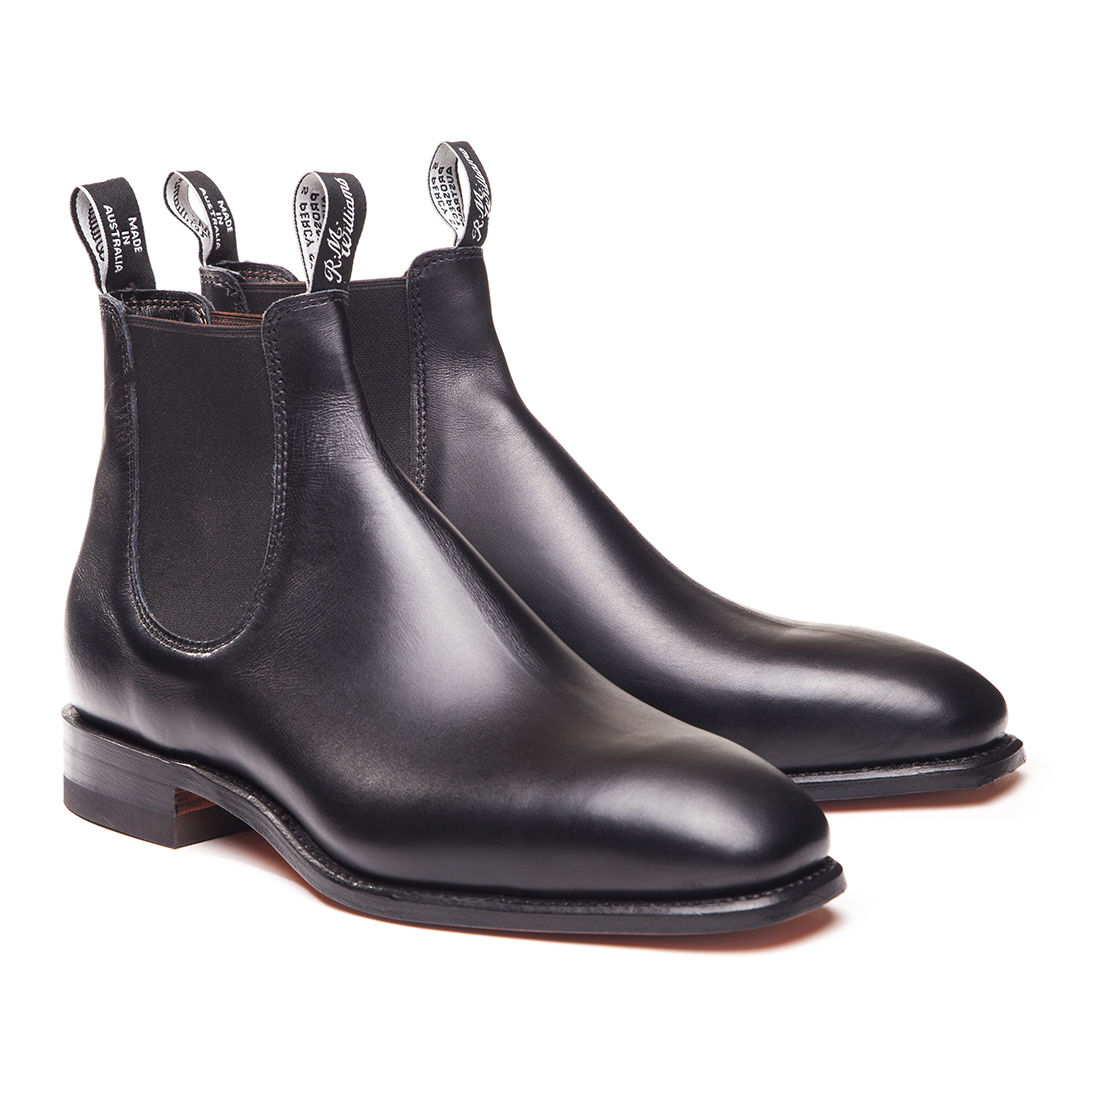 R.M. Williams classic boots - £350 - Nothing beats a pair of classic black boots. Wear with dark and fitted selvedge denim